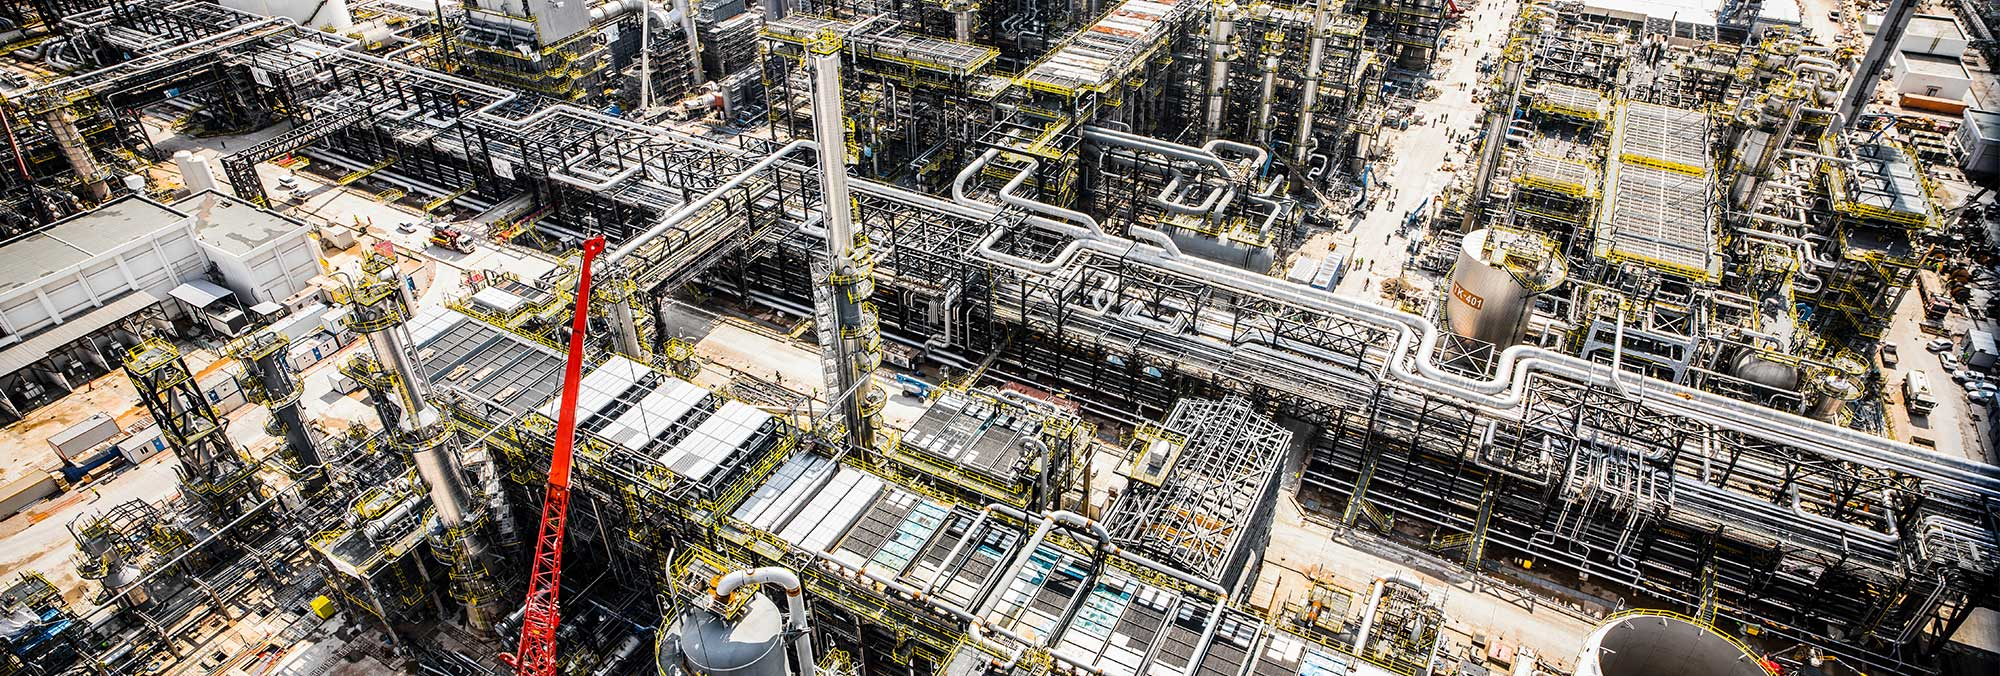 Petrochemical/ Chemicals